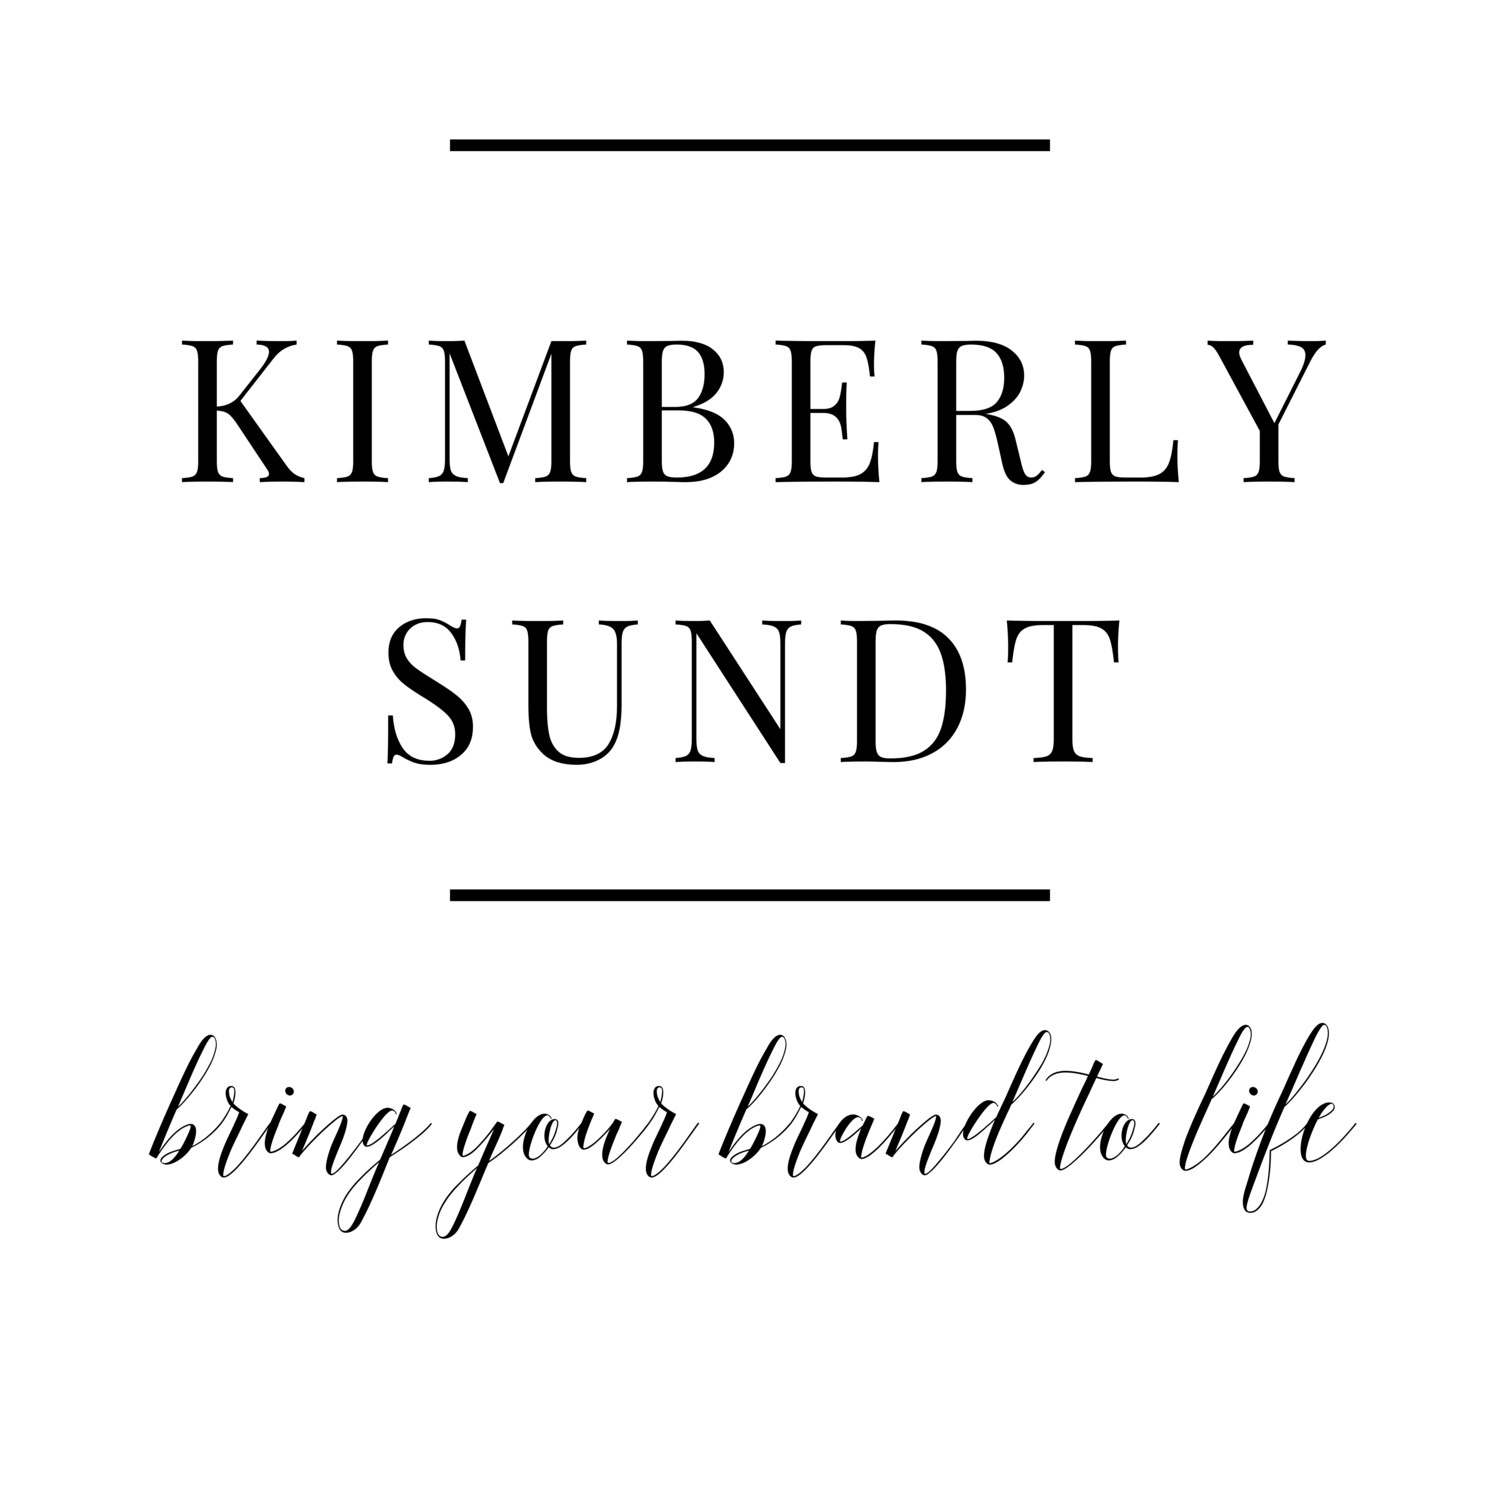 Kimberly Sundt | Bring Your Brand to Life